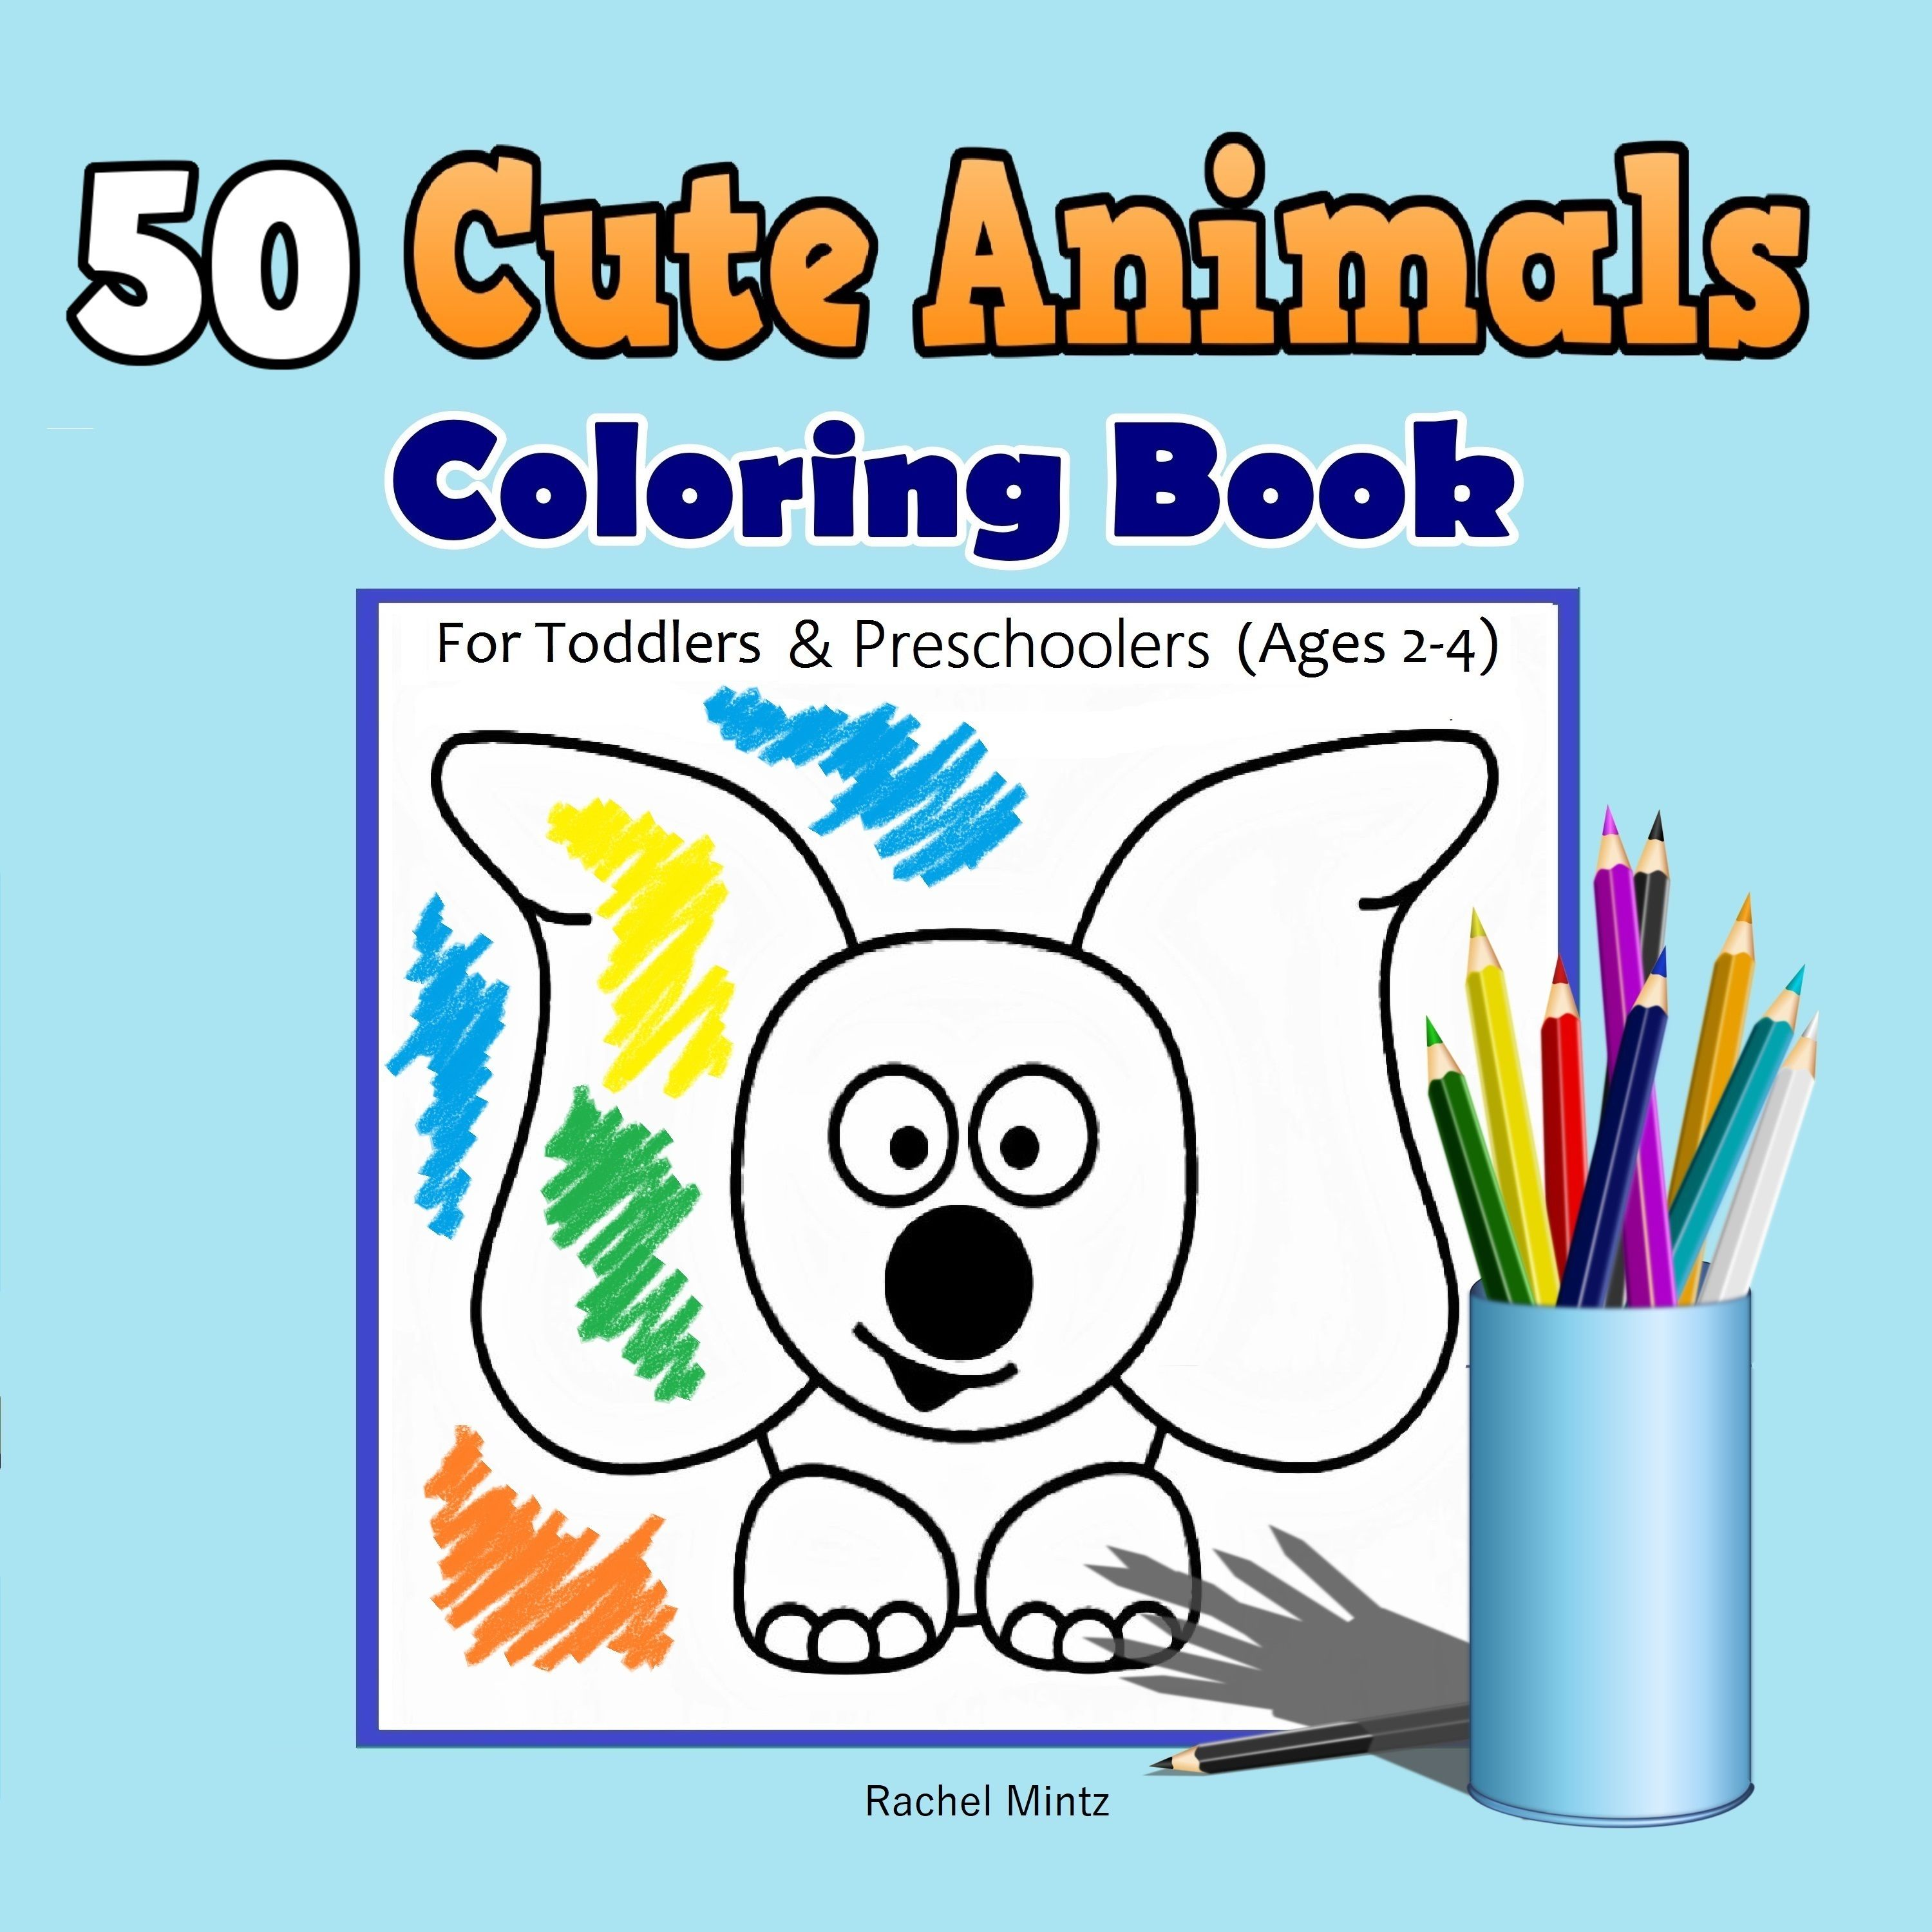 My First Animals Coloring Book Give Your Toddler Children The Exact Coloring Book They Want 50 Animal Coloring Books Toddler Coloring Book Coloring Books